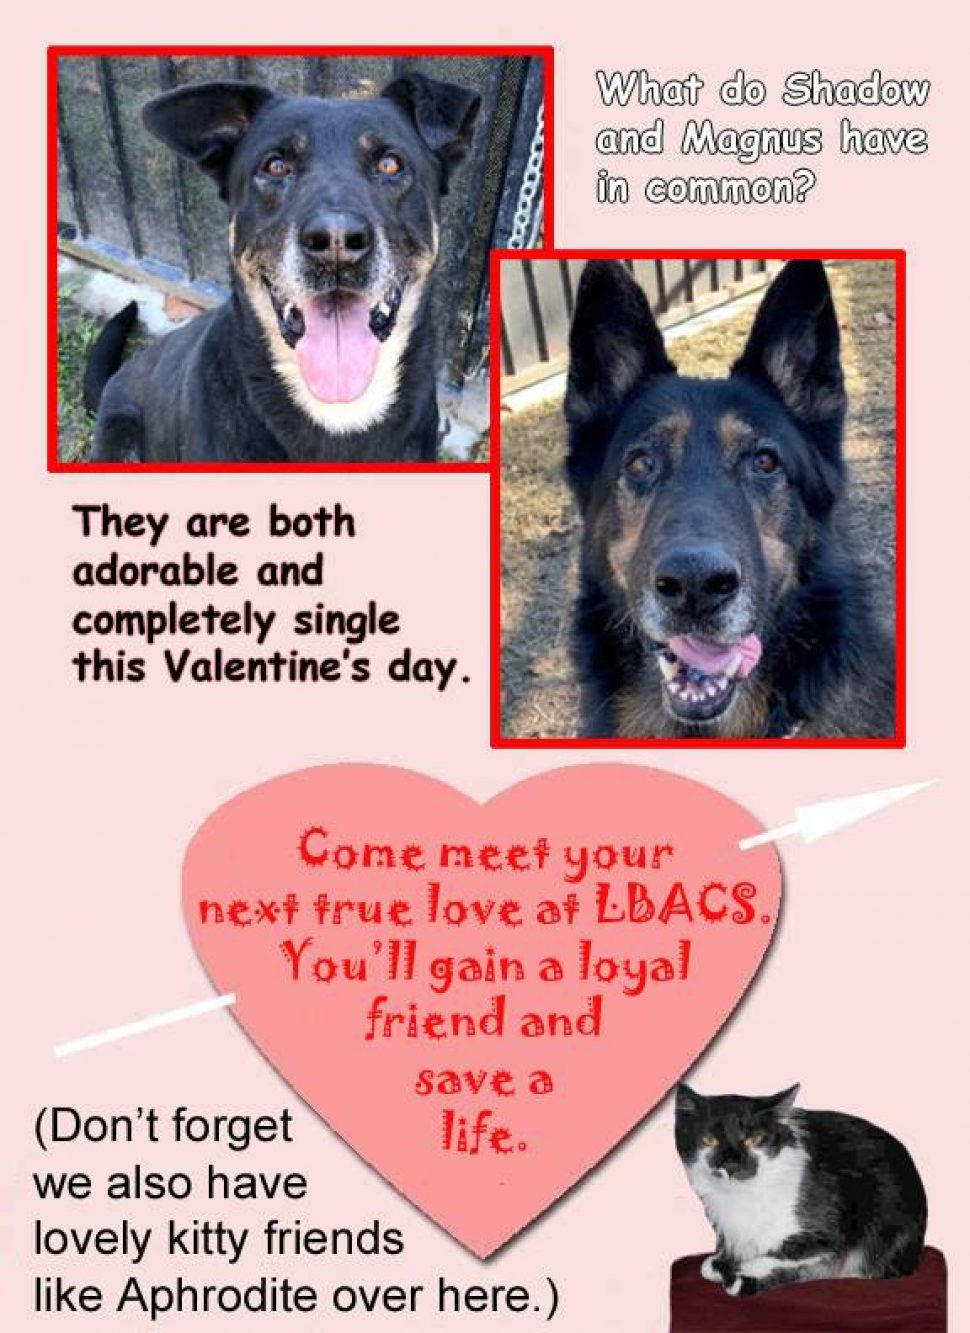 Two photos of big dogs--one a Rottwieler mix and the other a German shepherd, and a gray-and-white cat with a gray, splotchy mask talking about finding your match at the shelter.